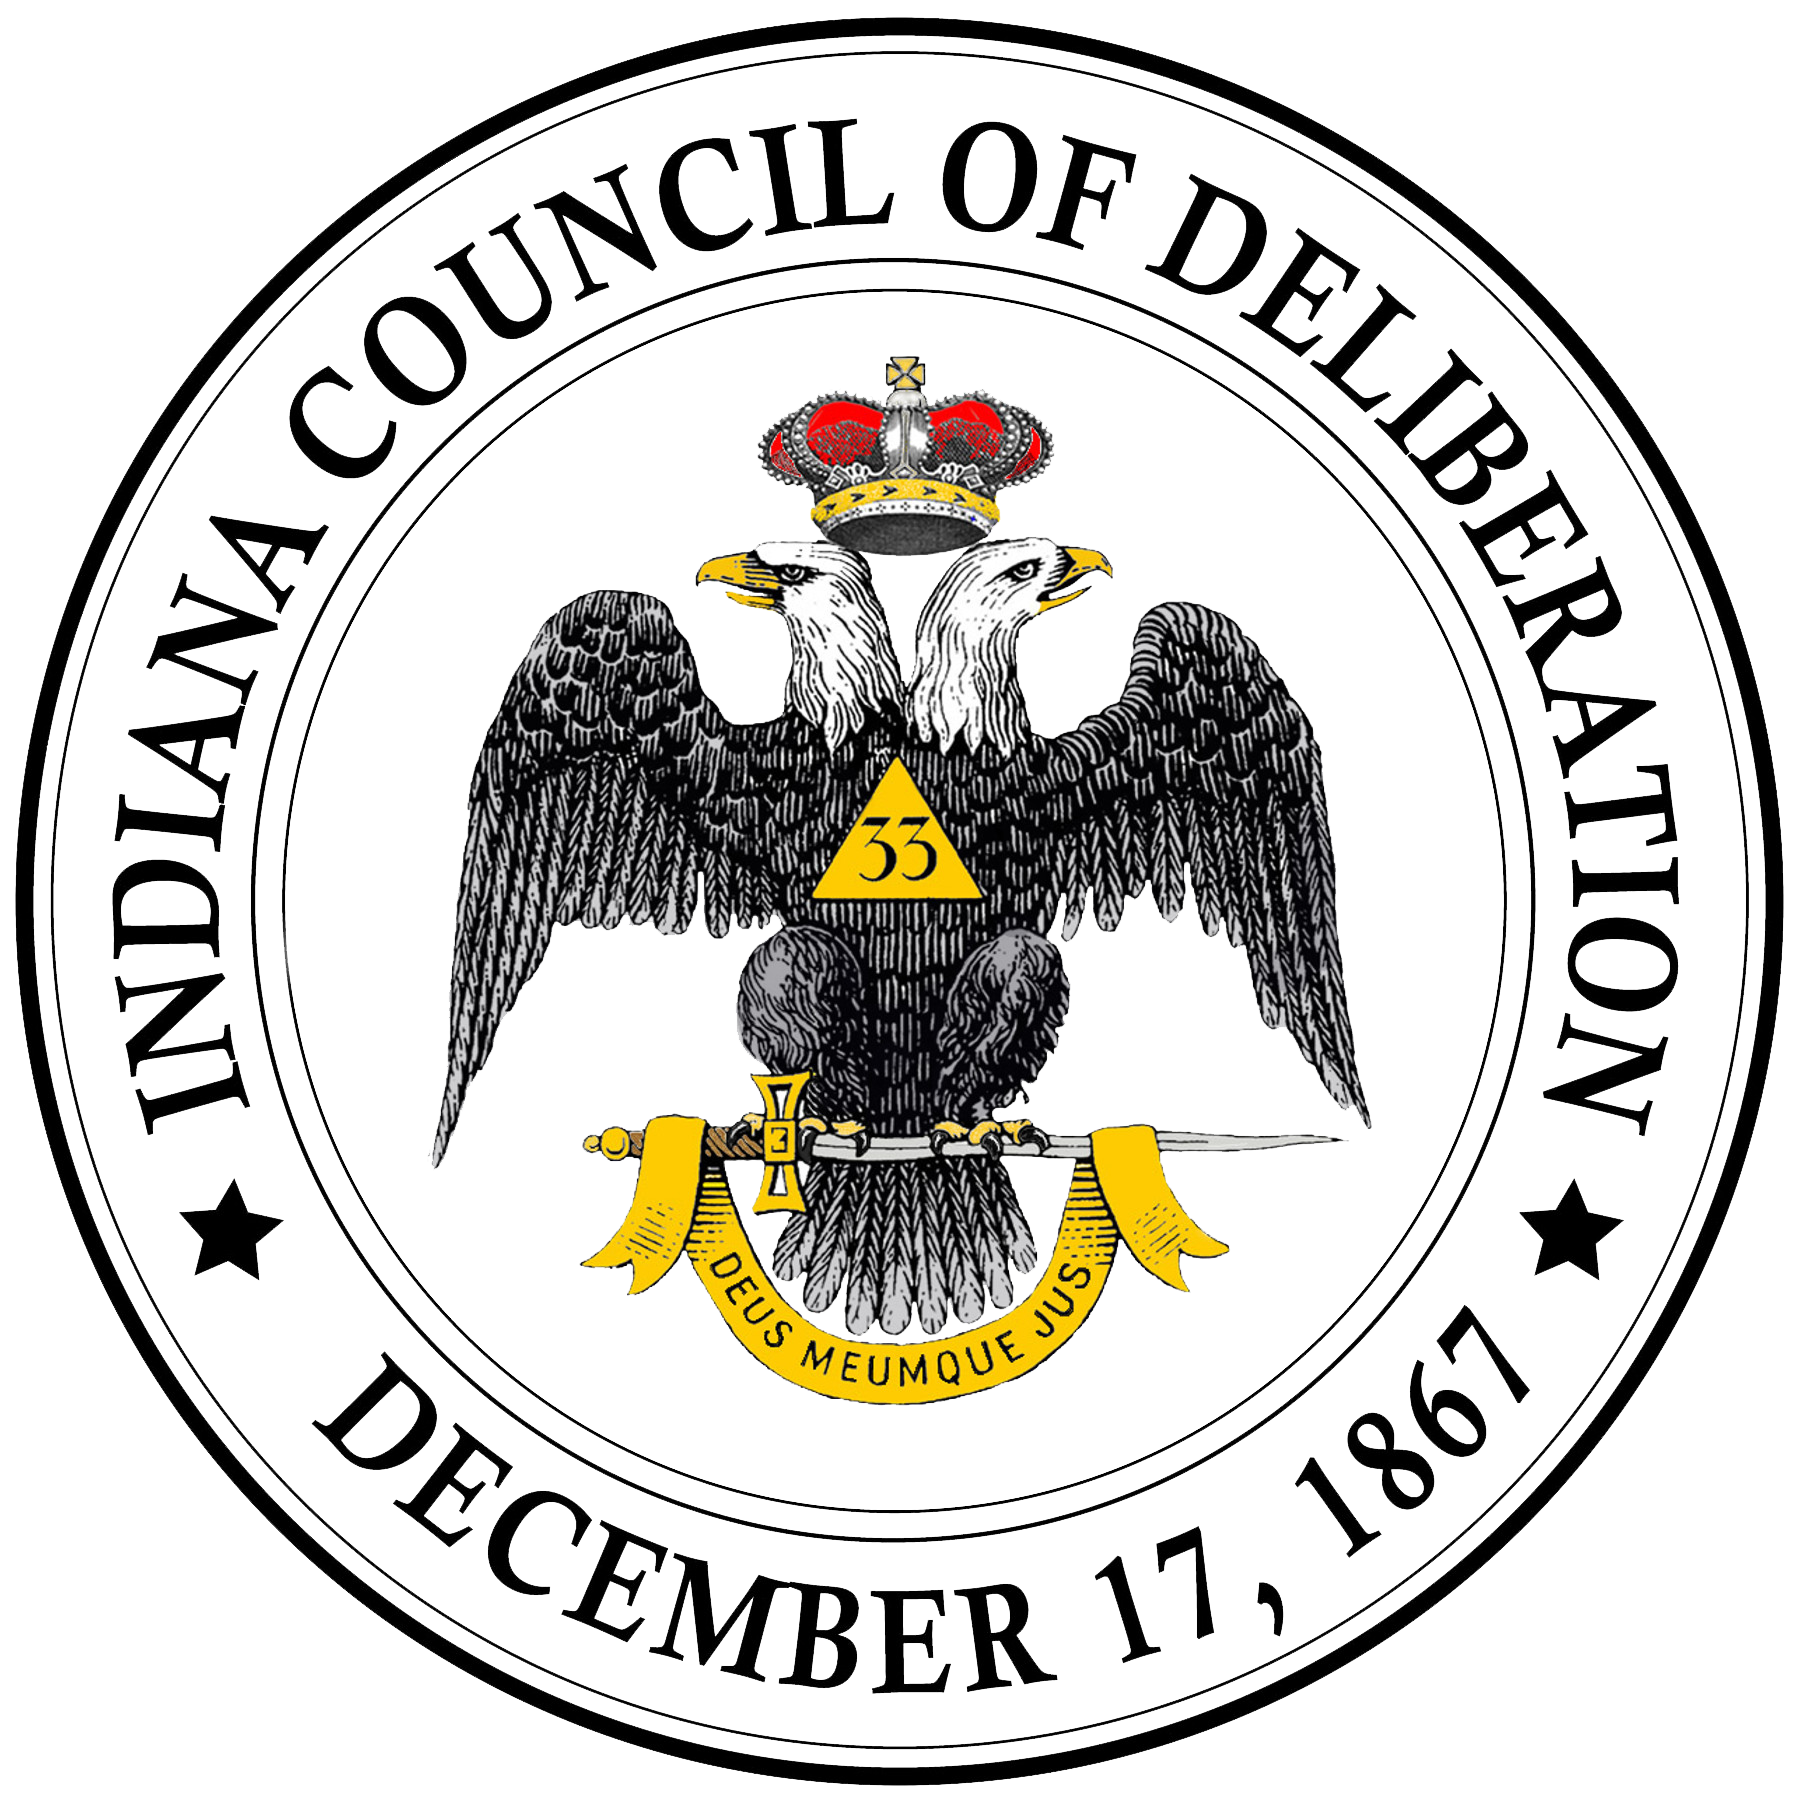 1800x1804 Indiana Cod Medal Of Honor Indiana Council Of Deliberation